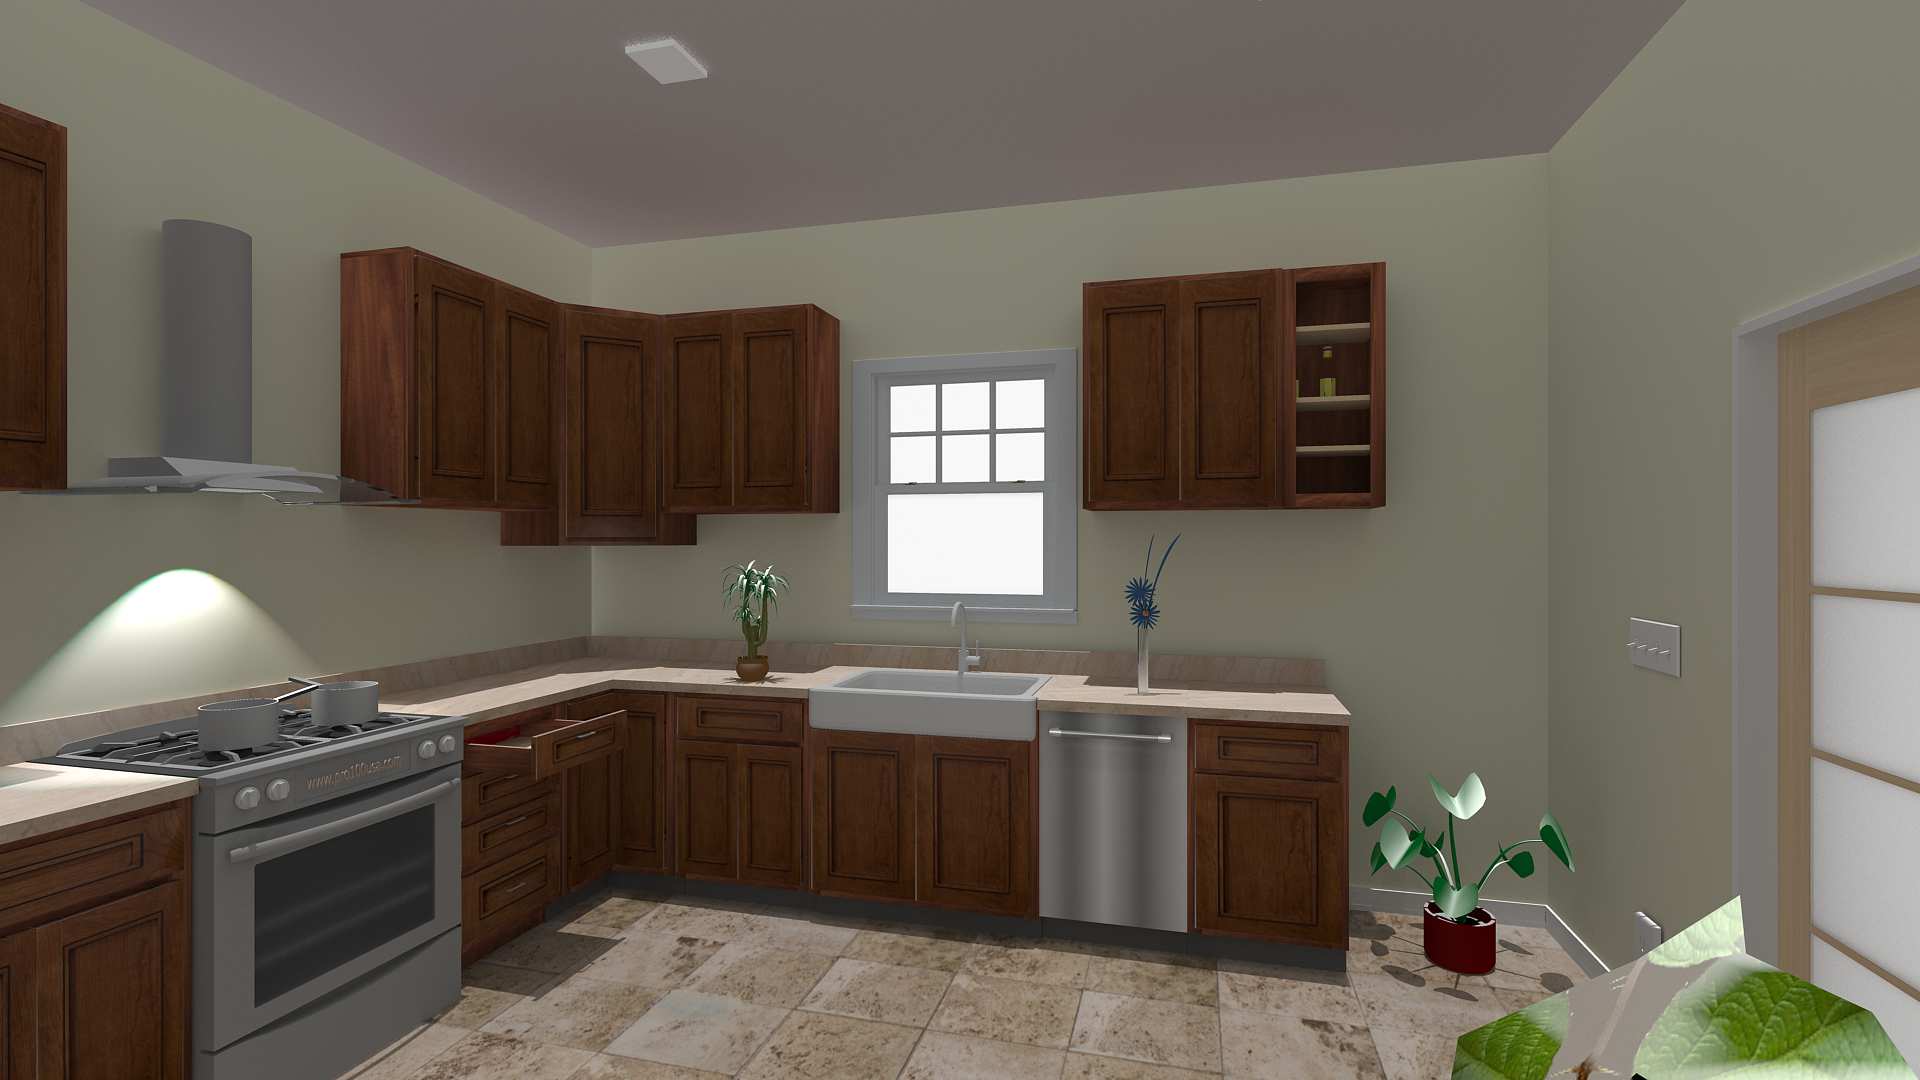 Office Design Software With Images Kitchen Design Software Design Your Kitchen Cabinet Design